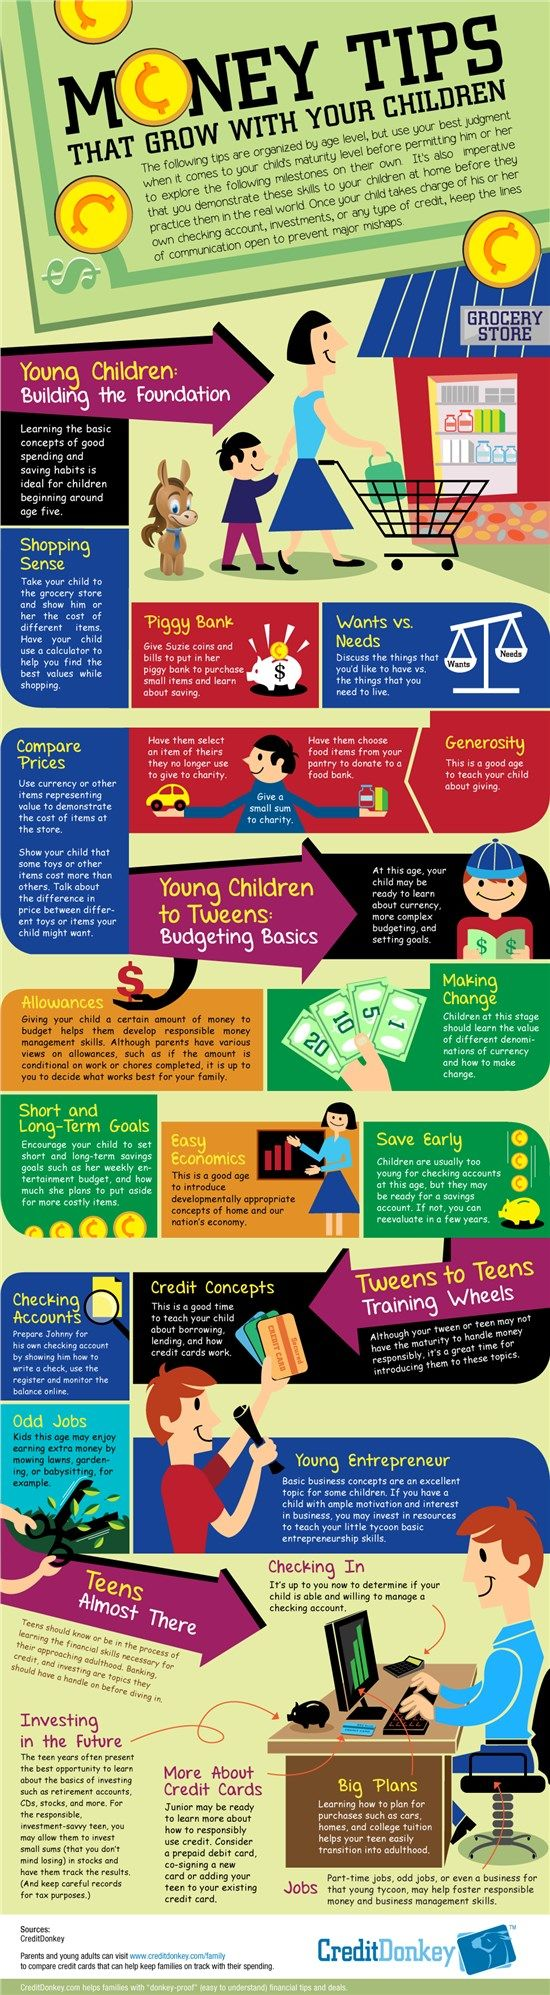 Infographic: Money Tips that Grow With Your Children